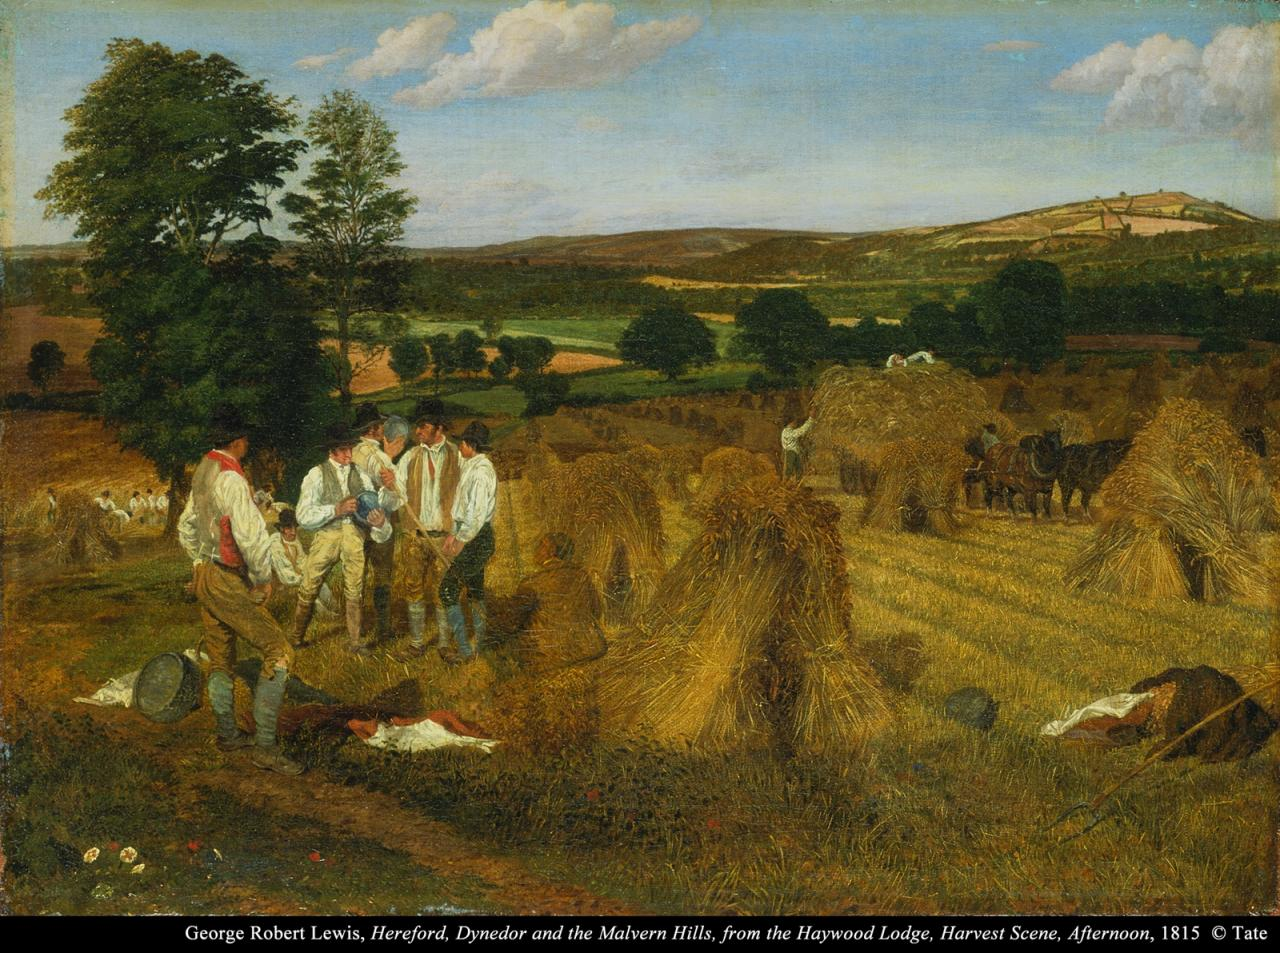 George Robert Lewis,Hereford, Dynedor and the Malvern Hills, from the Haywood Lodge, Harvest Scene, Afternoon image